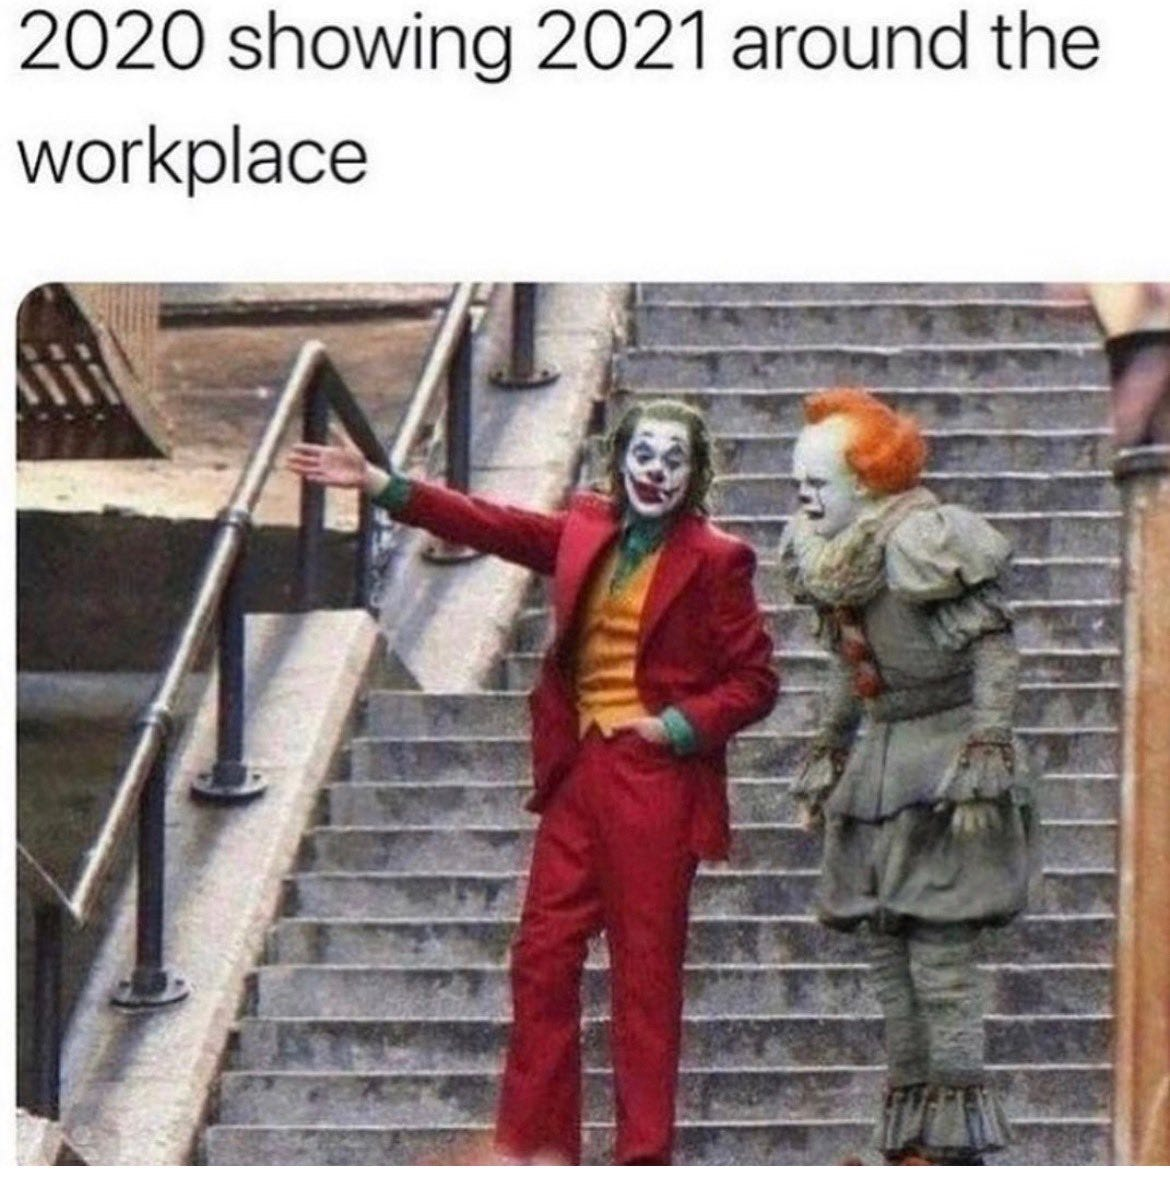 Joaquin Phoenix as The Joker points something out to Pennywise the Clown. Caption: 2020 showing 2021 around the workplace.